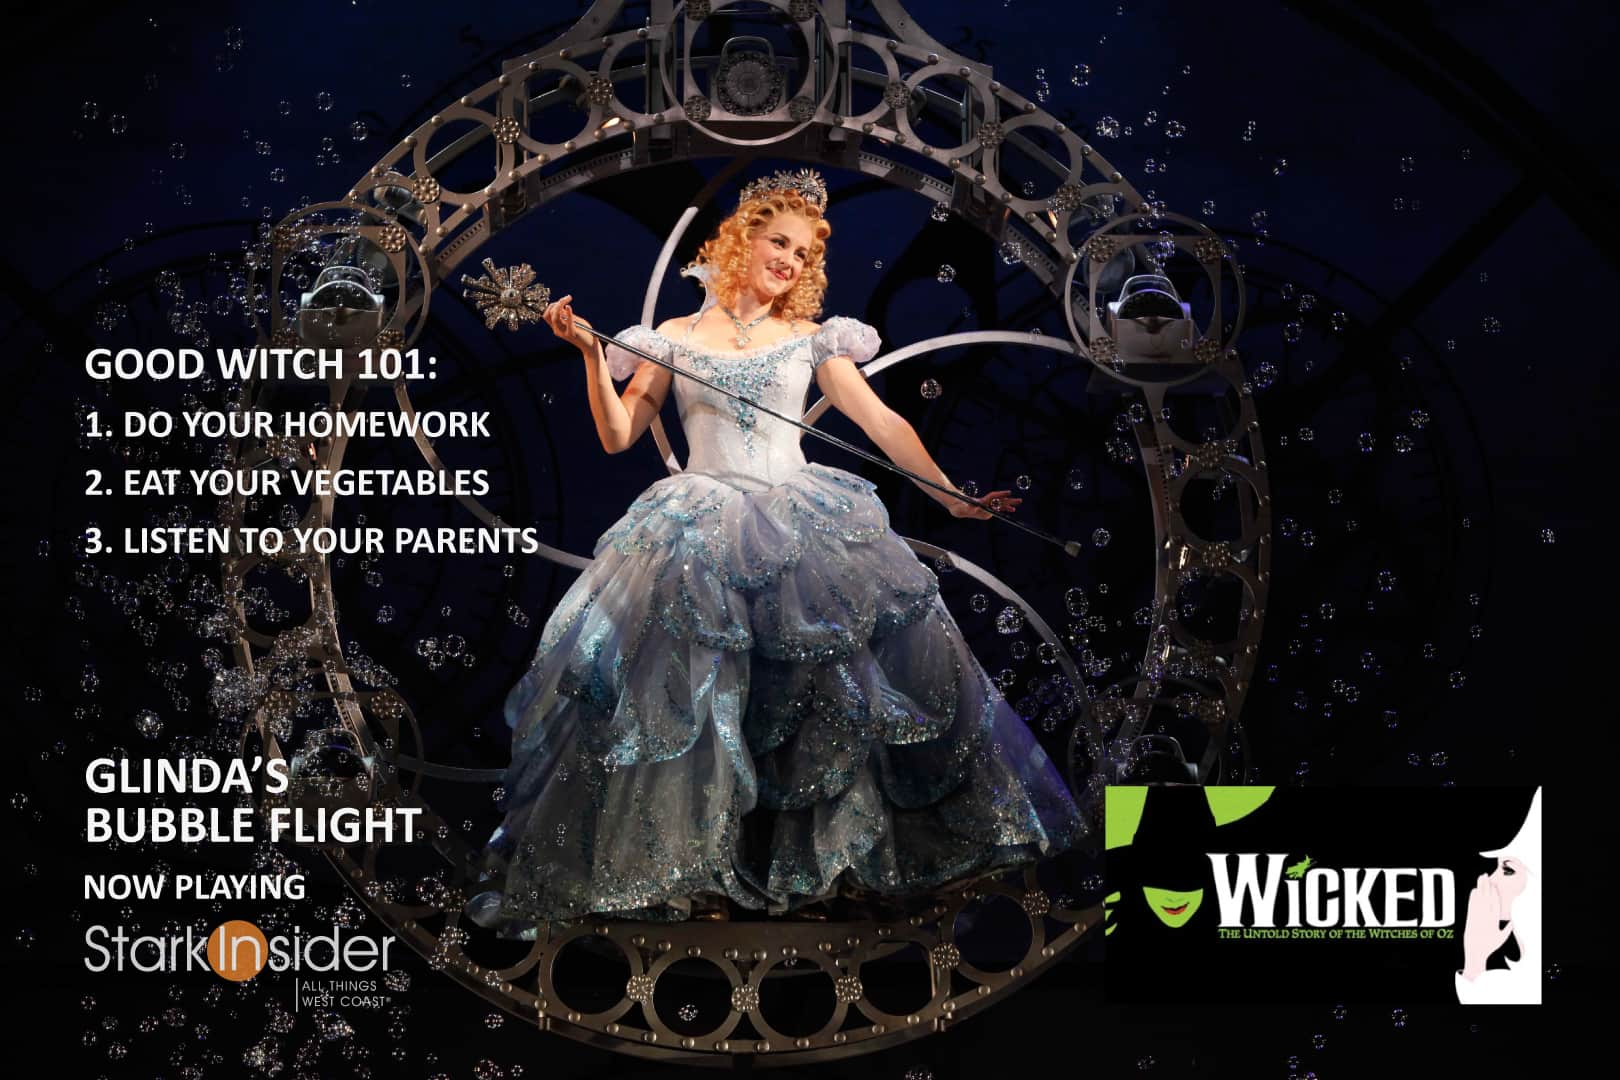 'Wicked' Backstage Broadway: Floating in Glinda's Bubble ...